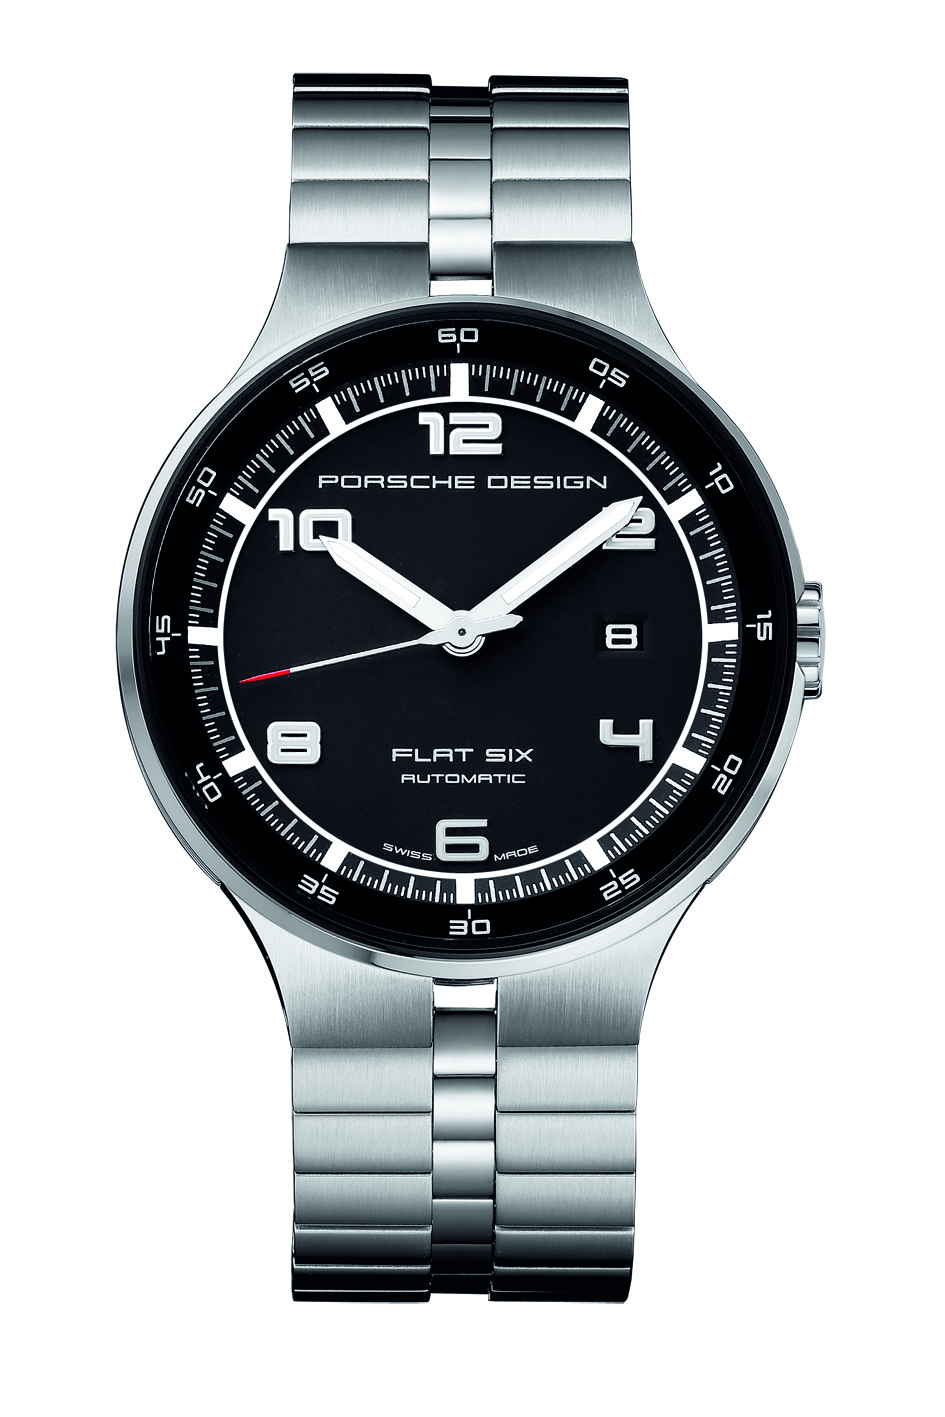 The Porsche Design P'6350 Flat Six